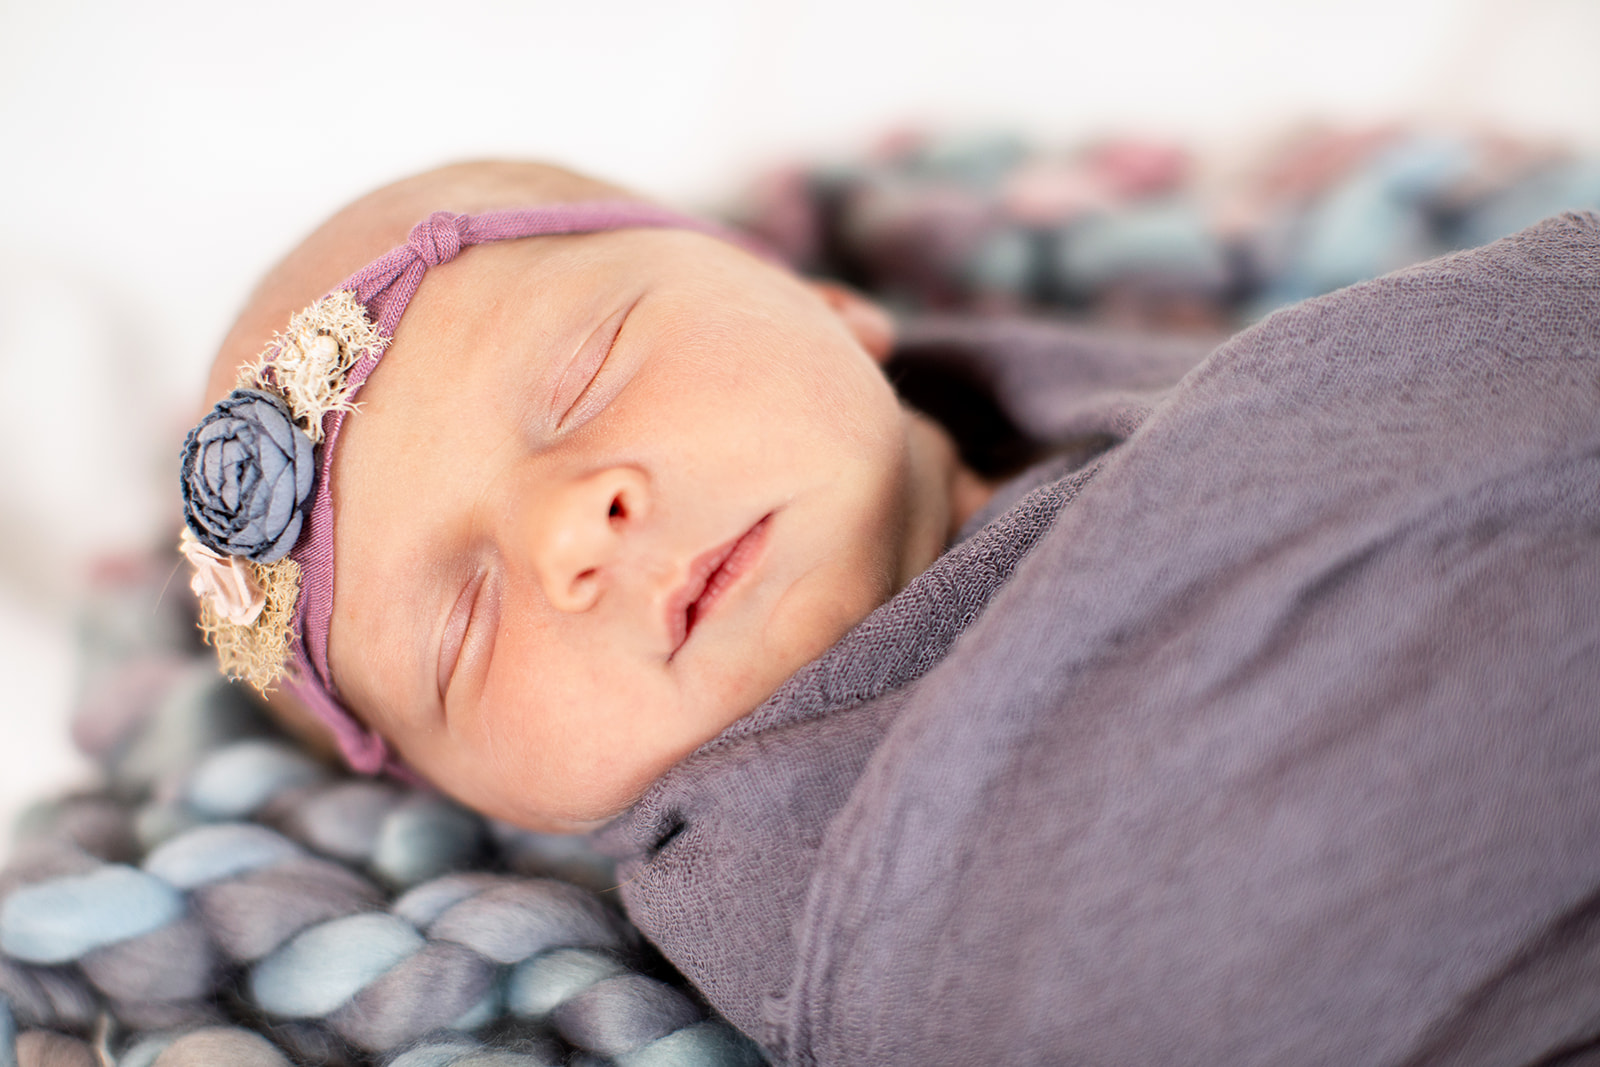 Avonlea Noelles Studio Newborn Photo Shoot - Image Property of www.j-dphoto.com